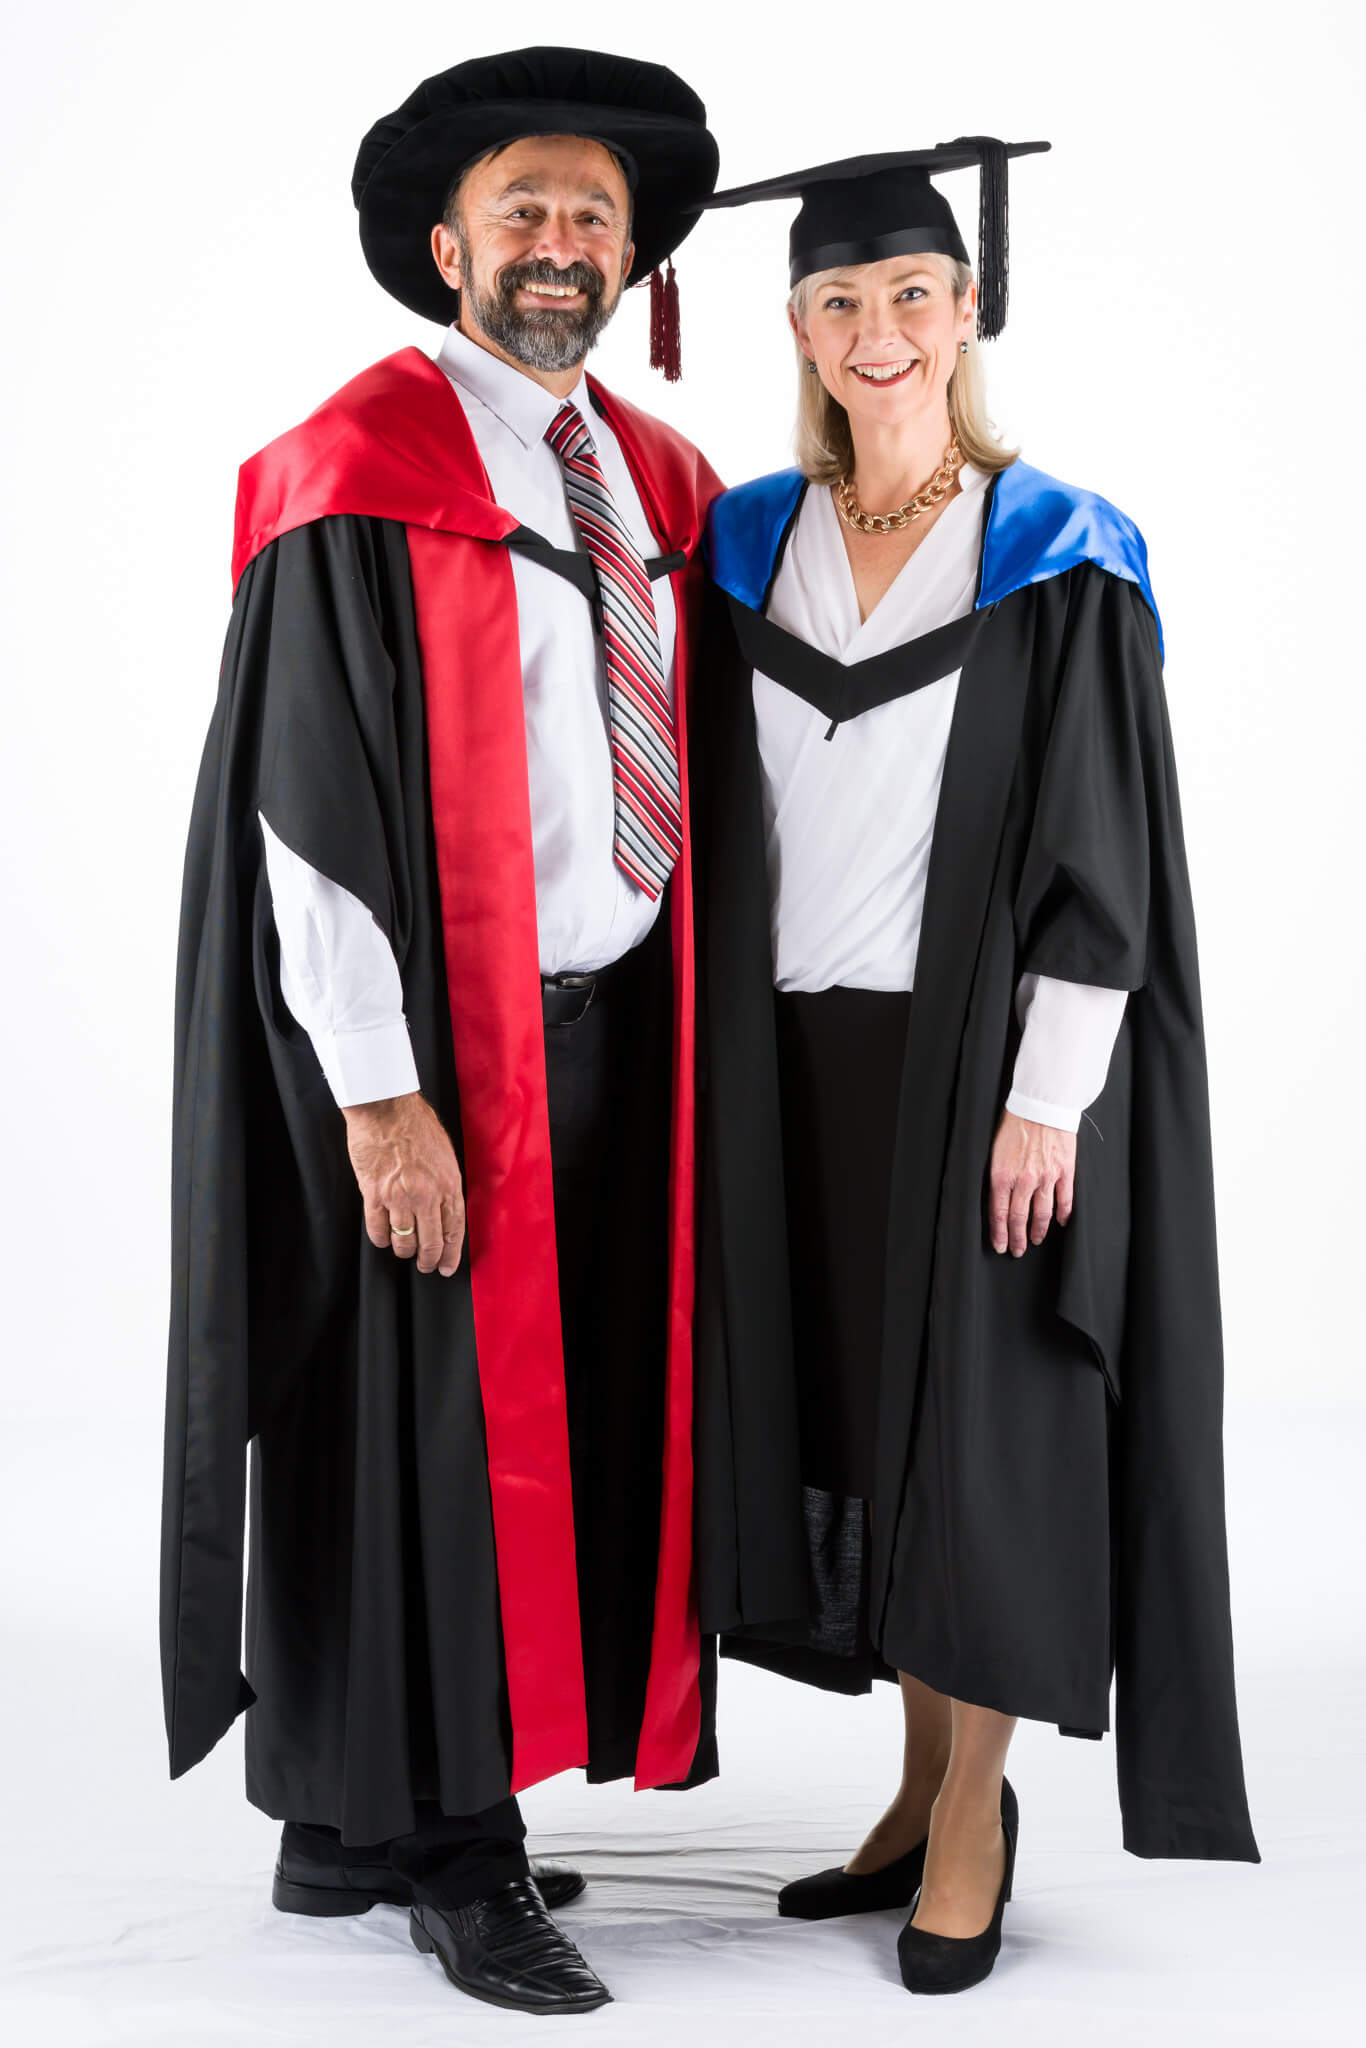 Academic Regalia Hire Schools and Colleges | The Gown Chick